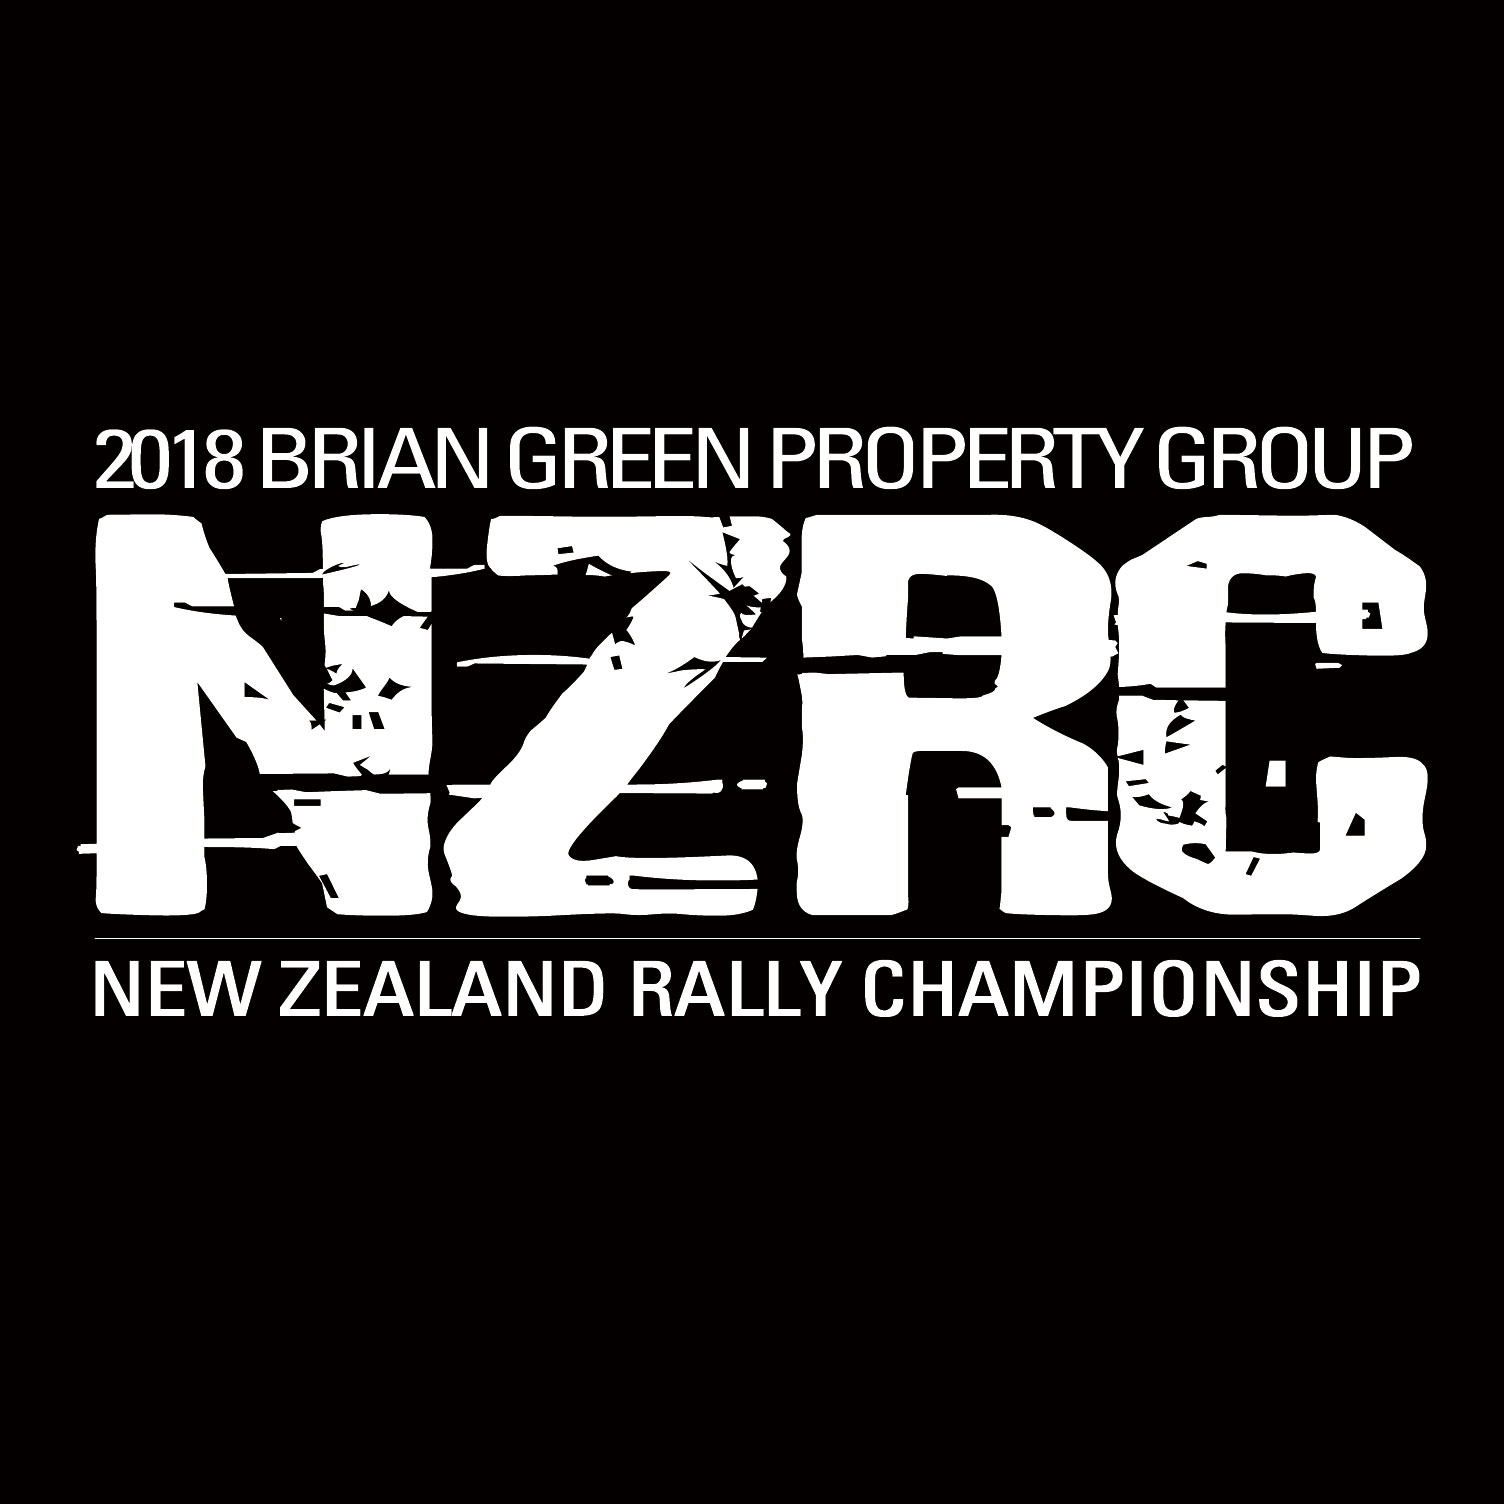 Holder claims maiden victory at Rally Whangarei | :: Brian Green Property Group New Zealand Rally Championship ::